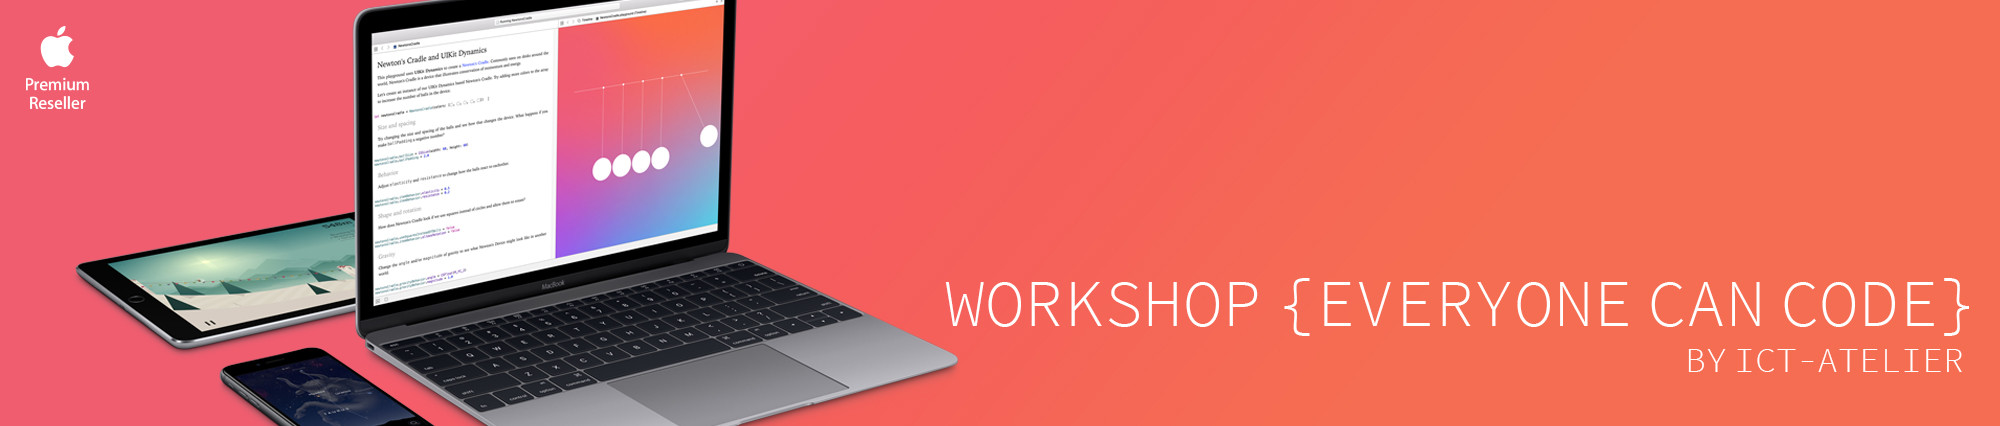 https://dpyxfisjd0mft.cloudfront.net/lab9-2/B2B/Evenementen/Education%20Workshops%202018/Header%20-%20Workshop%20ECC.jpg?1538653022&w=2000&h=426